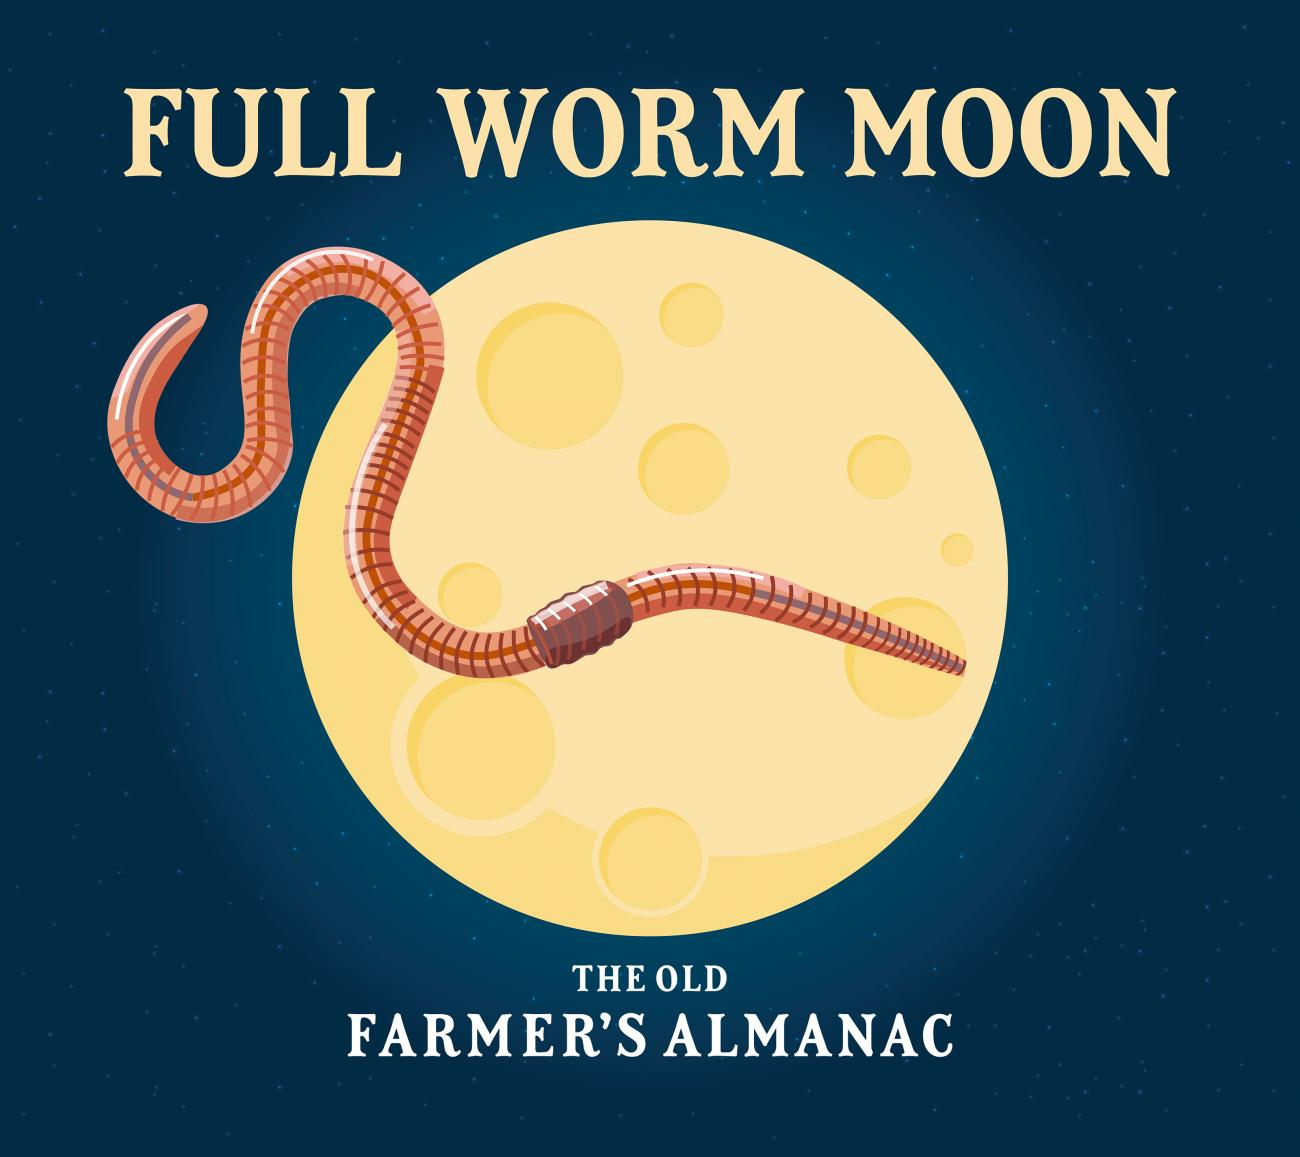 Full Moons for March 2018 The Full Worm Moon and Blue Moon The Old Farmers Almanac